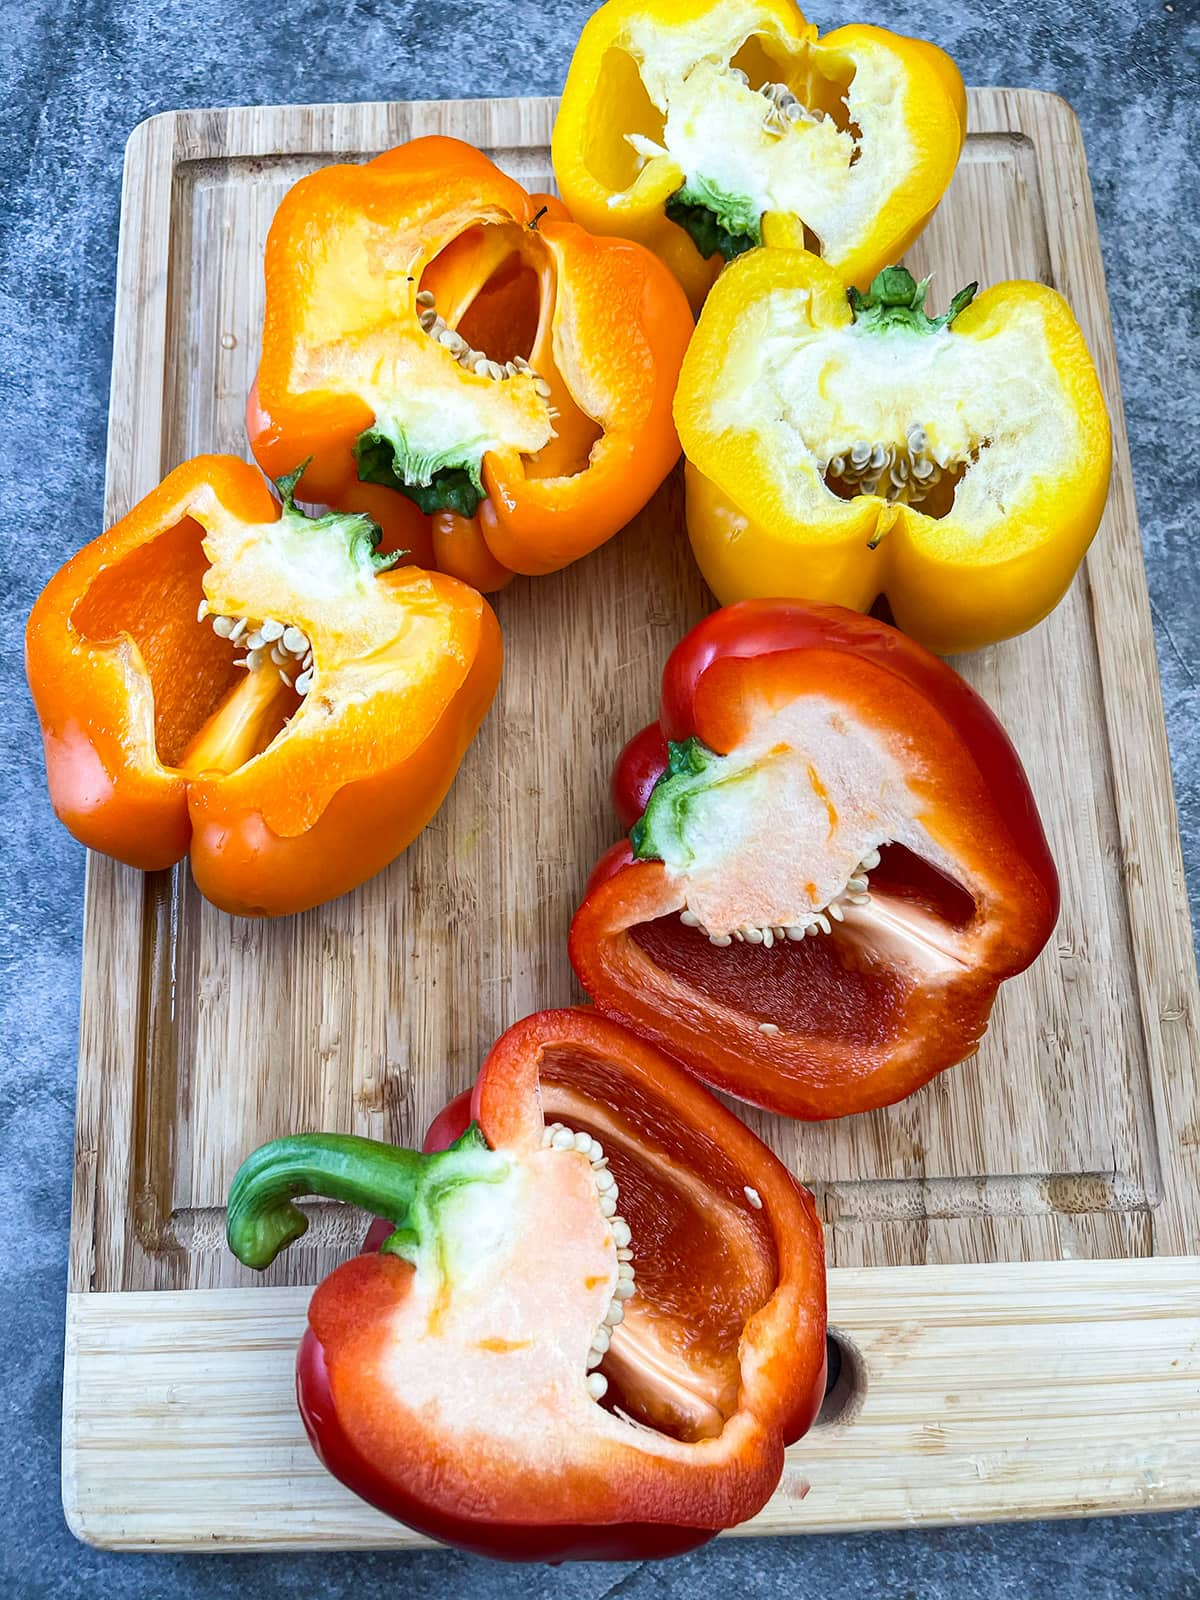 bell peppers cut into halves on cutting board